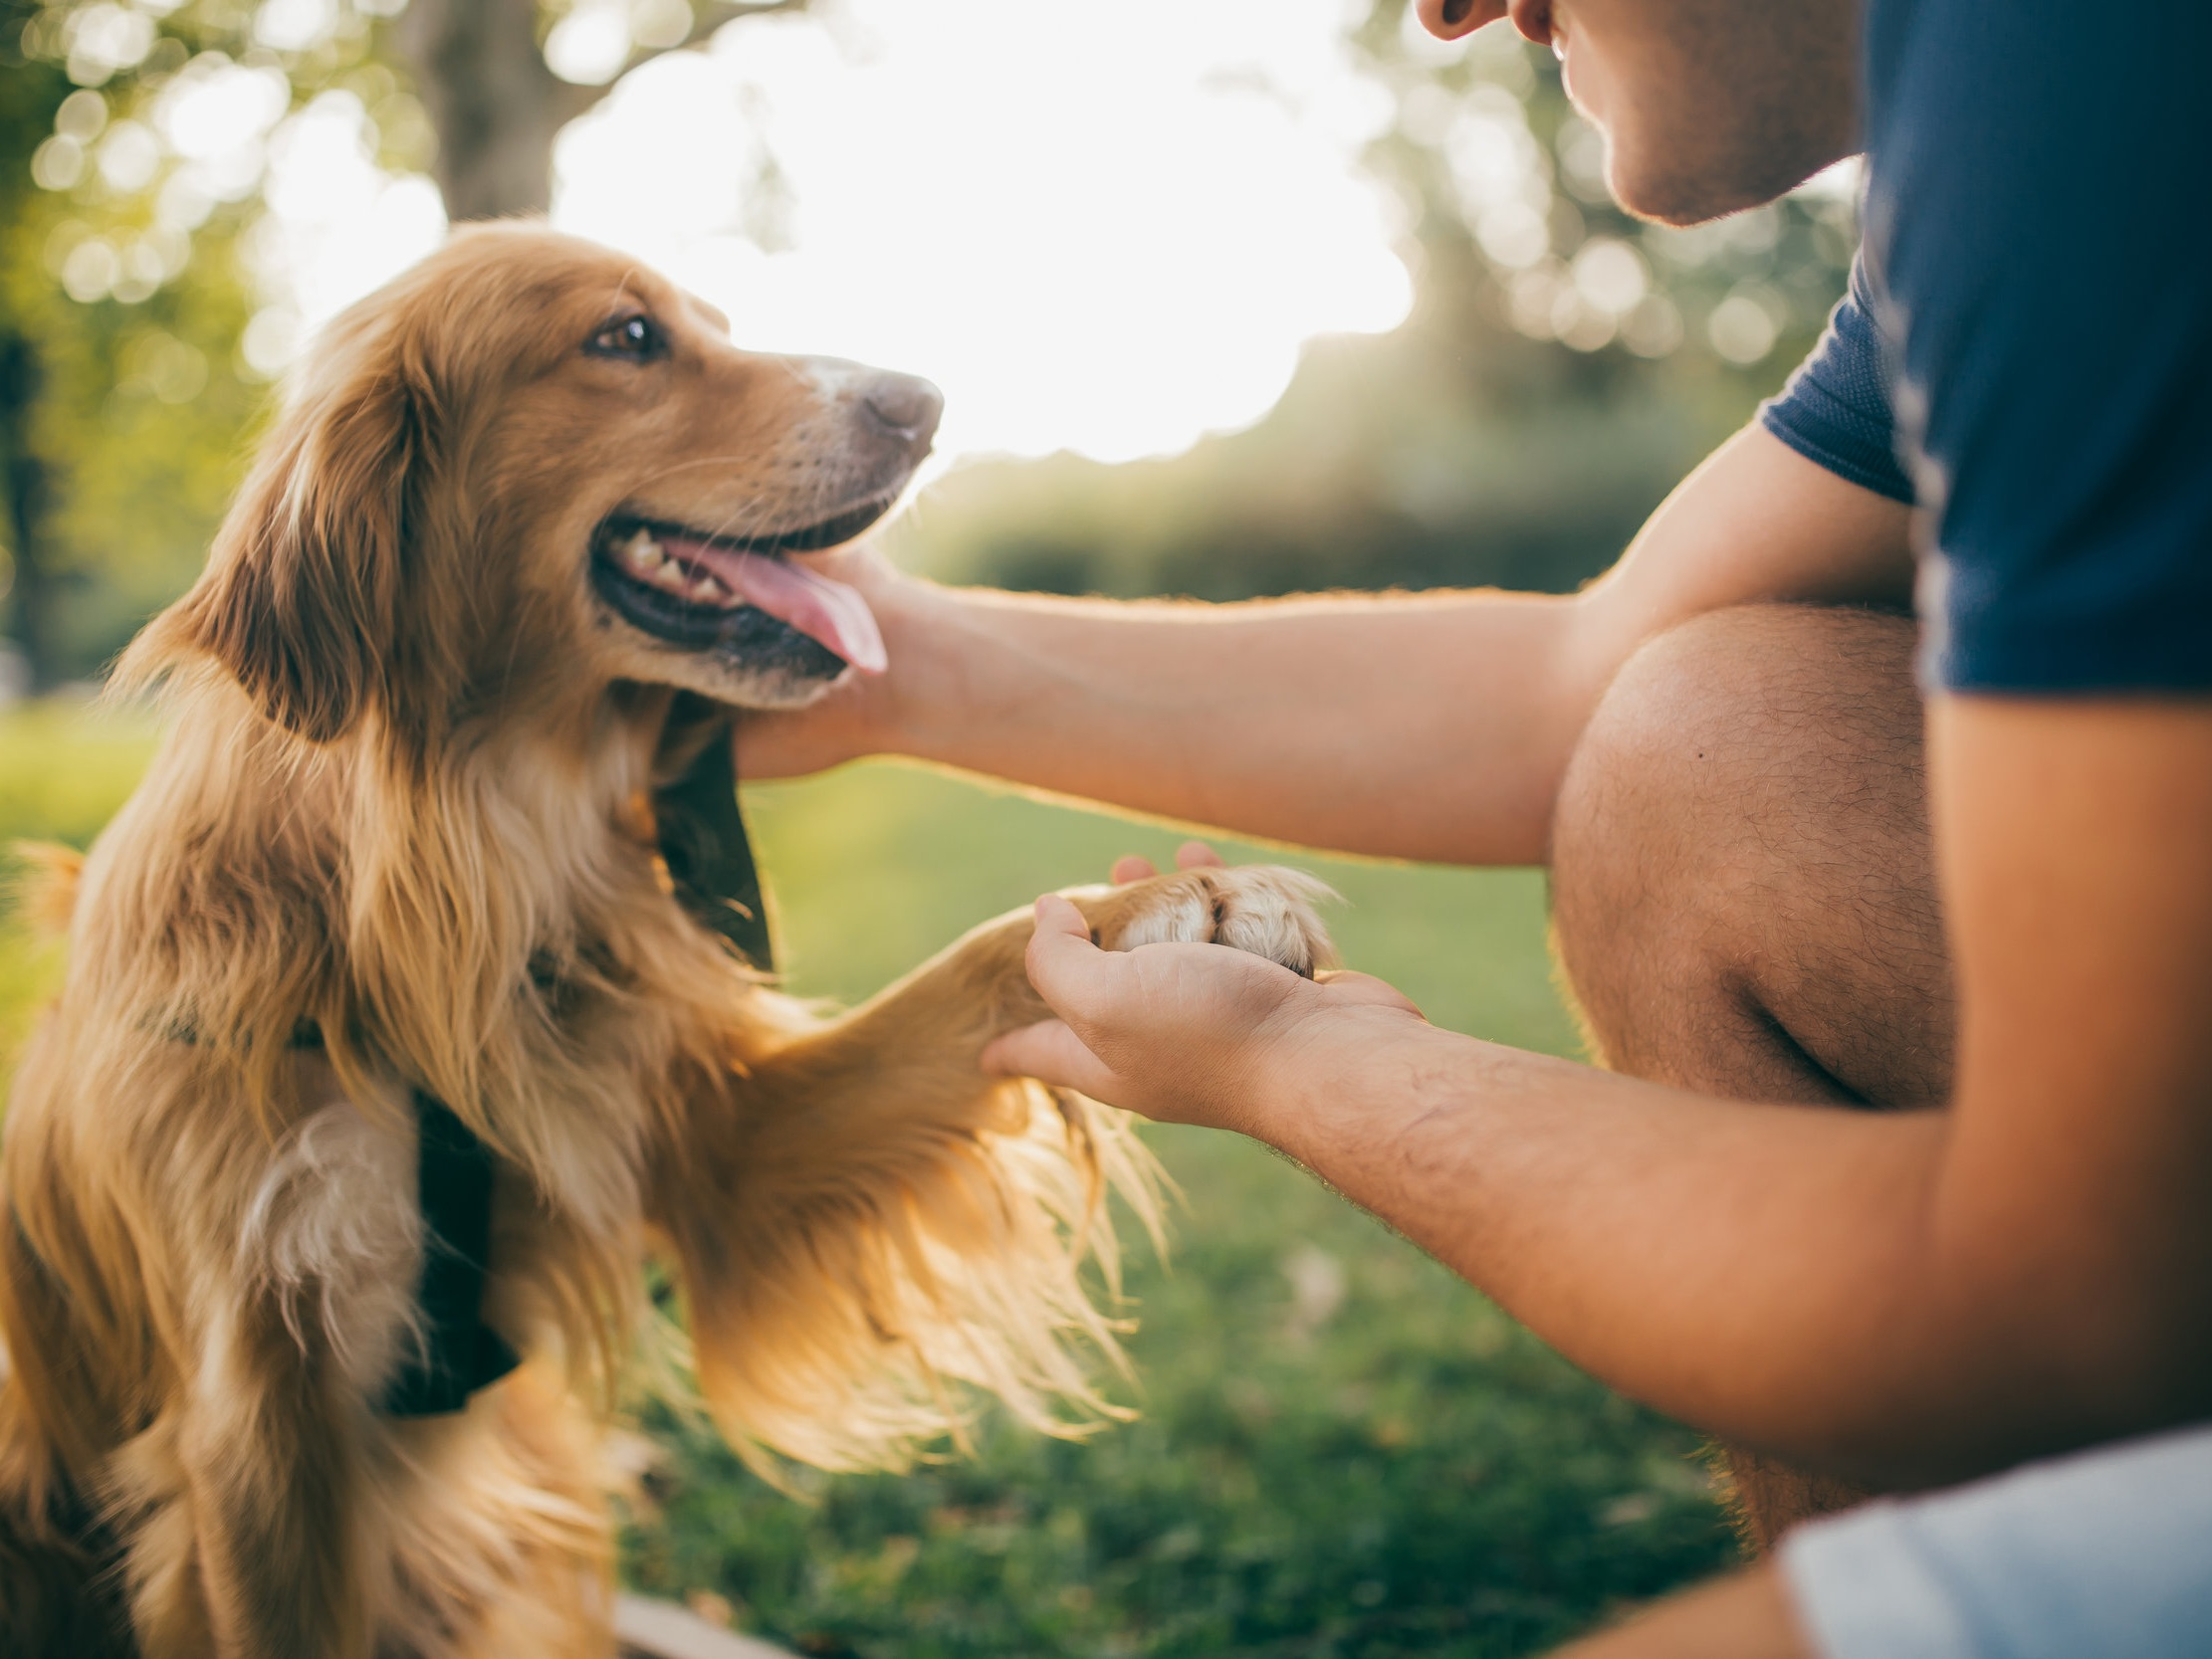 We Love Our Furry Friends! - We know that pets are your family too. That is why at IRET Properties, we offer pet friendly apartment living. All of our apartment communities are cat and dog friendly! We welcome you and your furry friends with open arms.